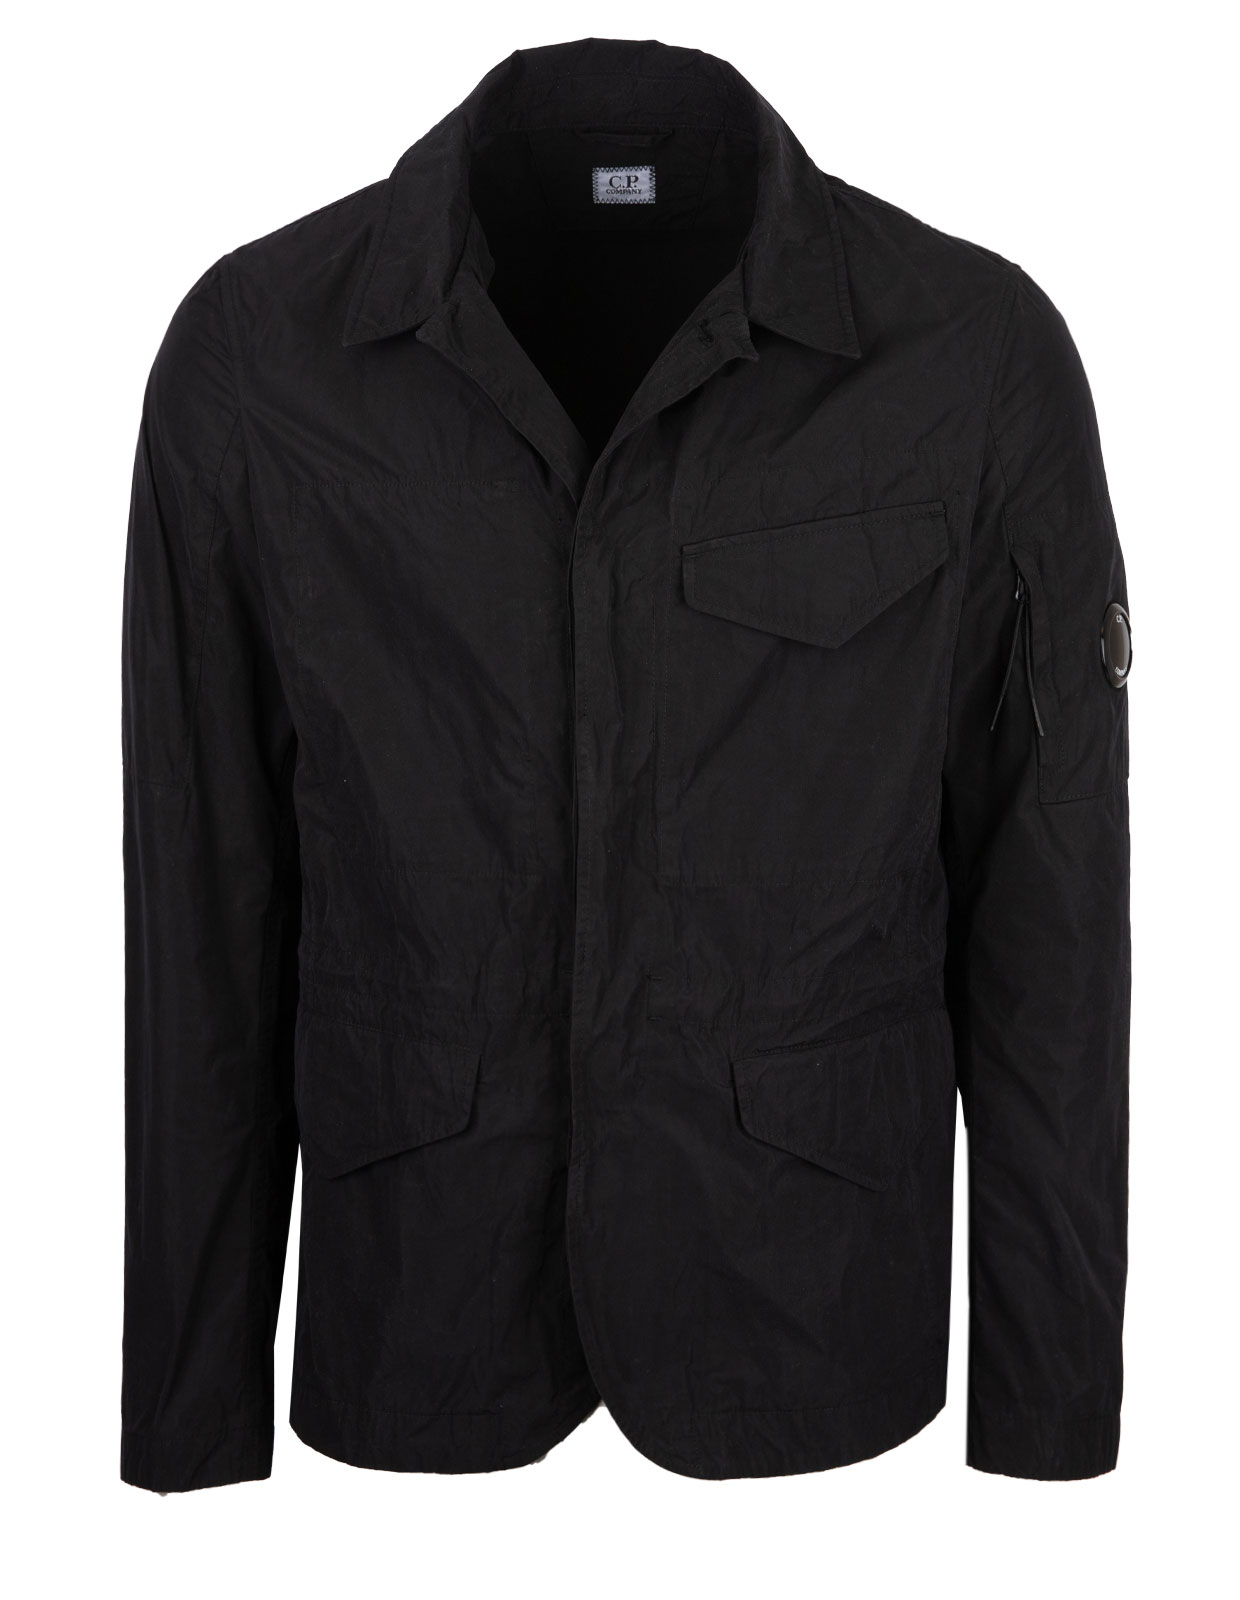 Memri Blazer Jacket Black